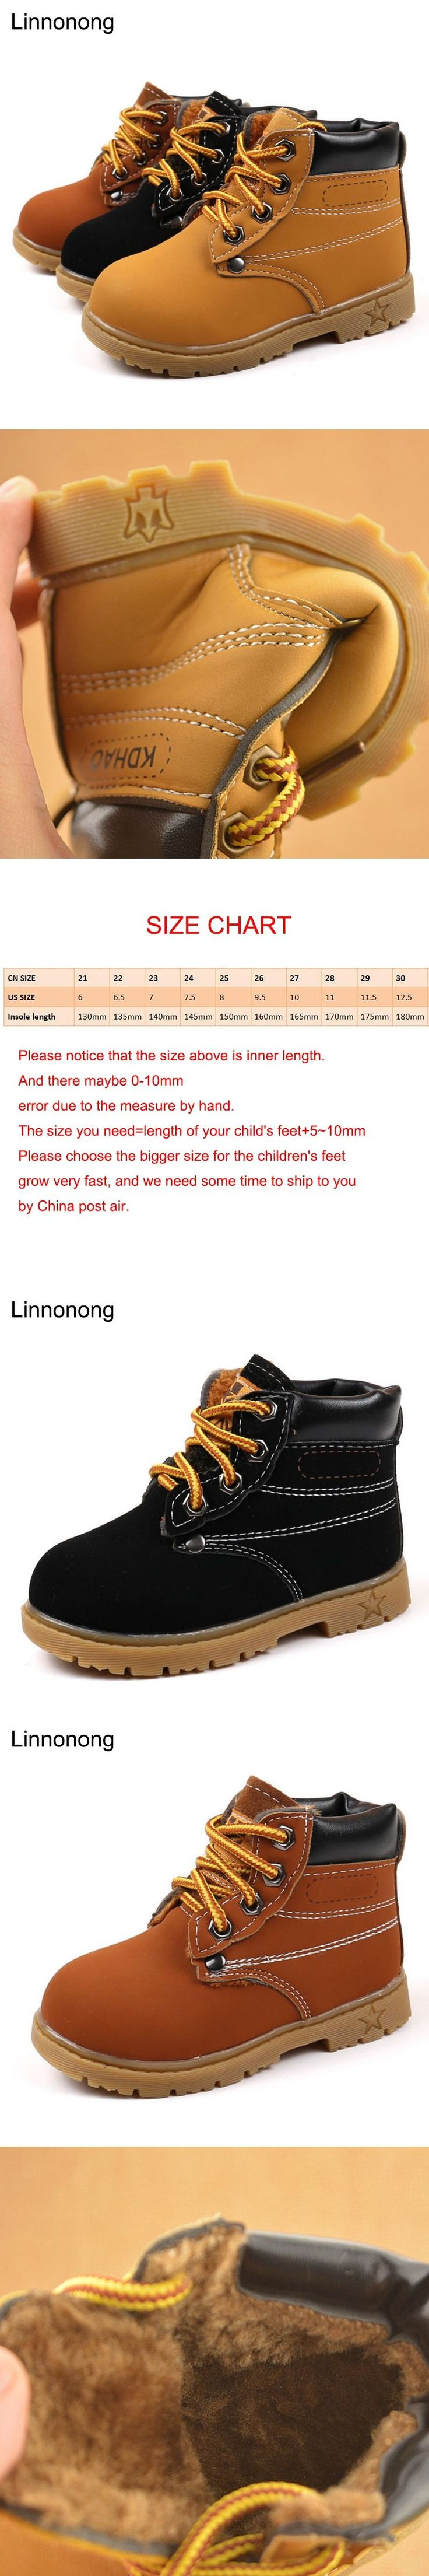 New Autumn Children Boots Yellow Shoes PU Leather Kids Martin Boots For Boys Toddler Girls Fashion Boots Winter Fur Snow Boots